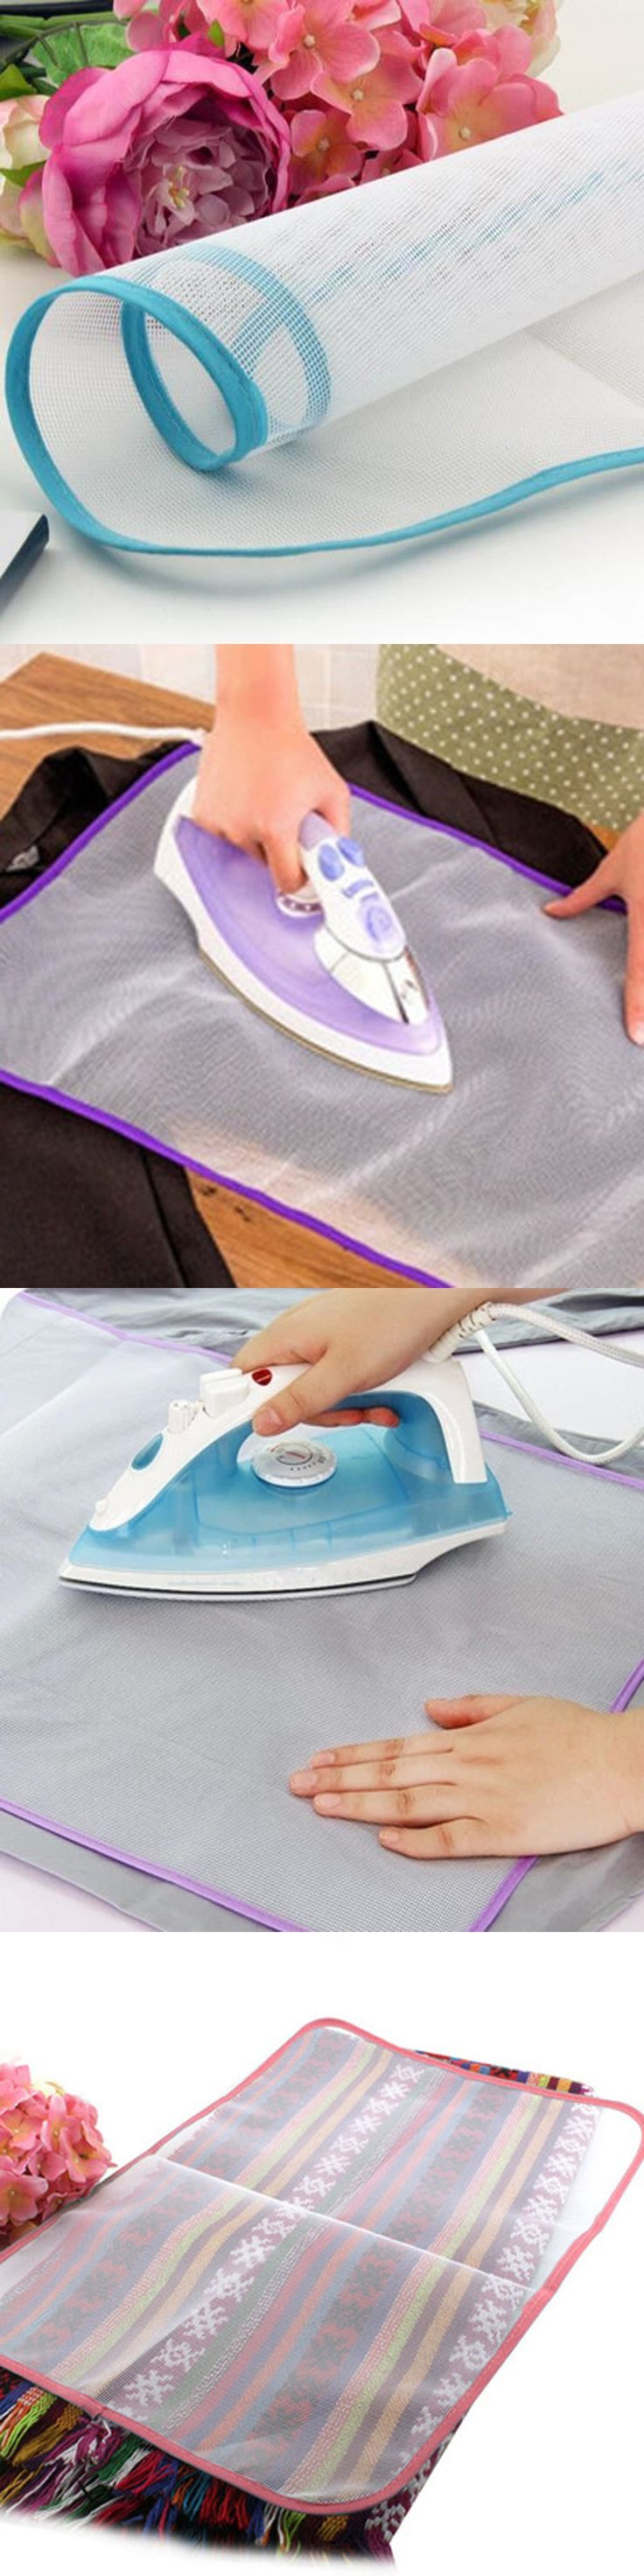 Japanese High Temperature Ironing Cloth Ironing Pad Protective Insulation Anti-scald Household Ironing Application Cloth